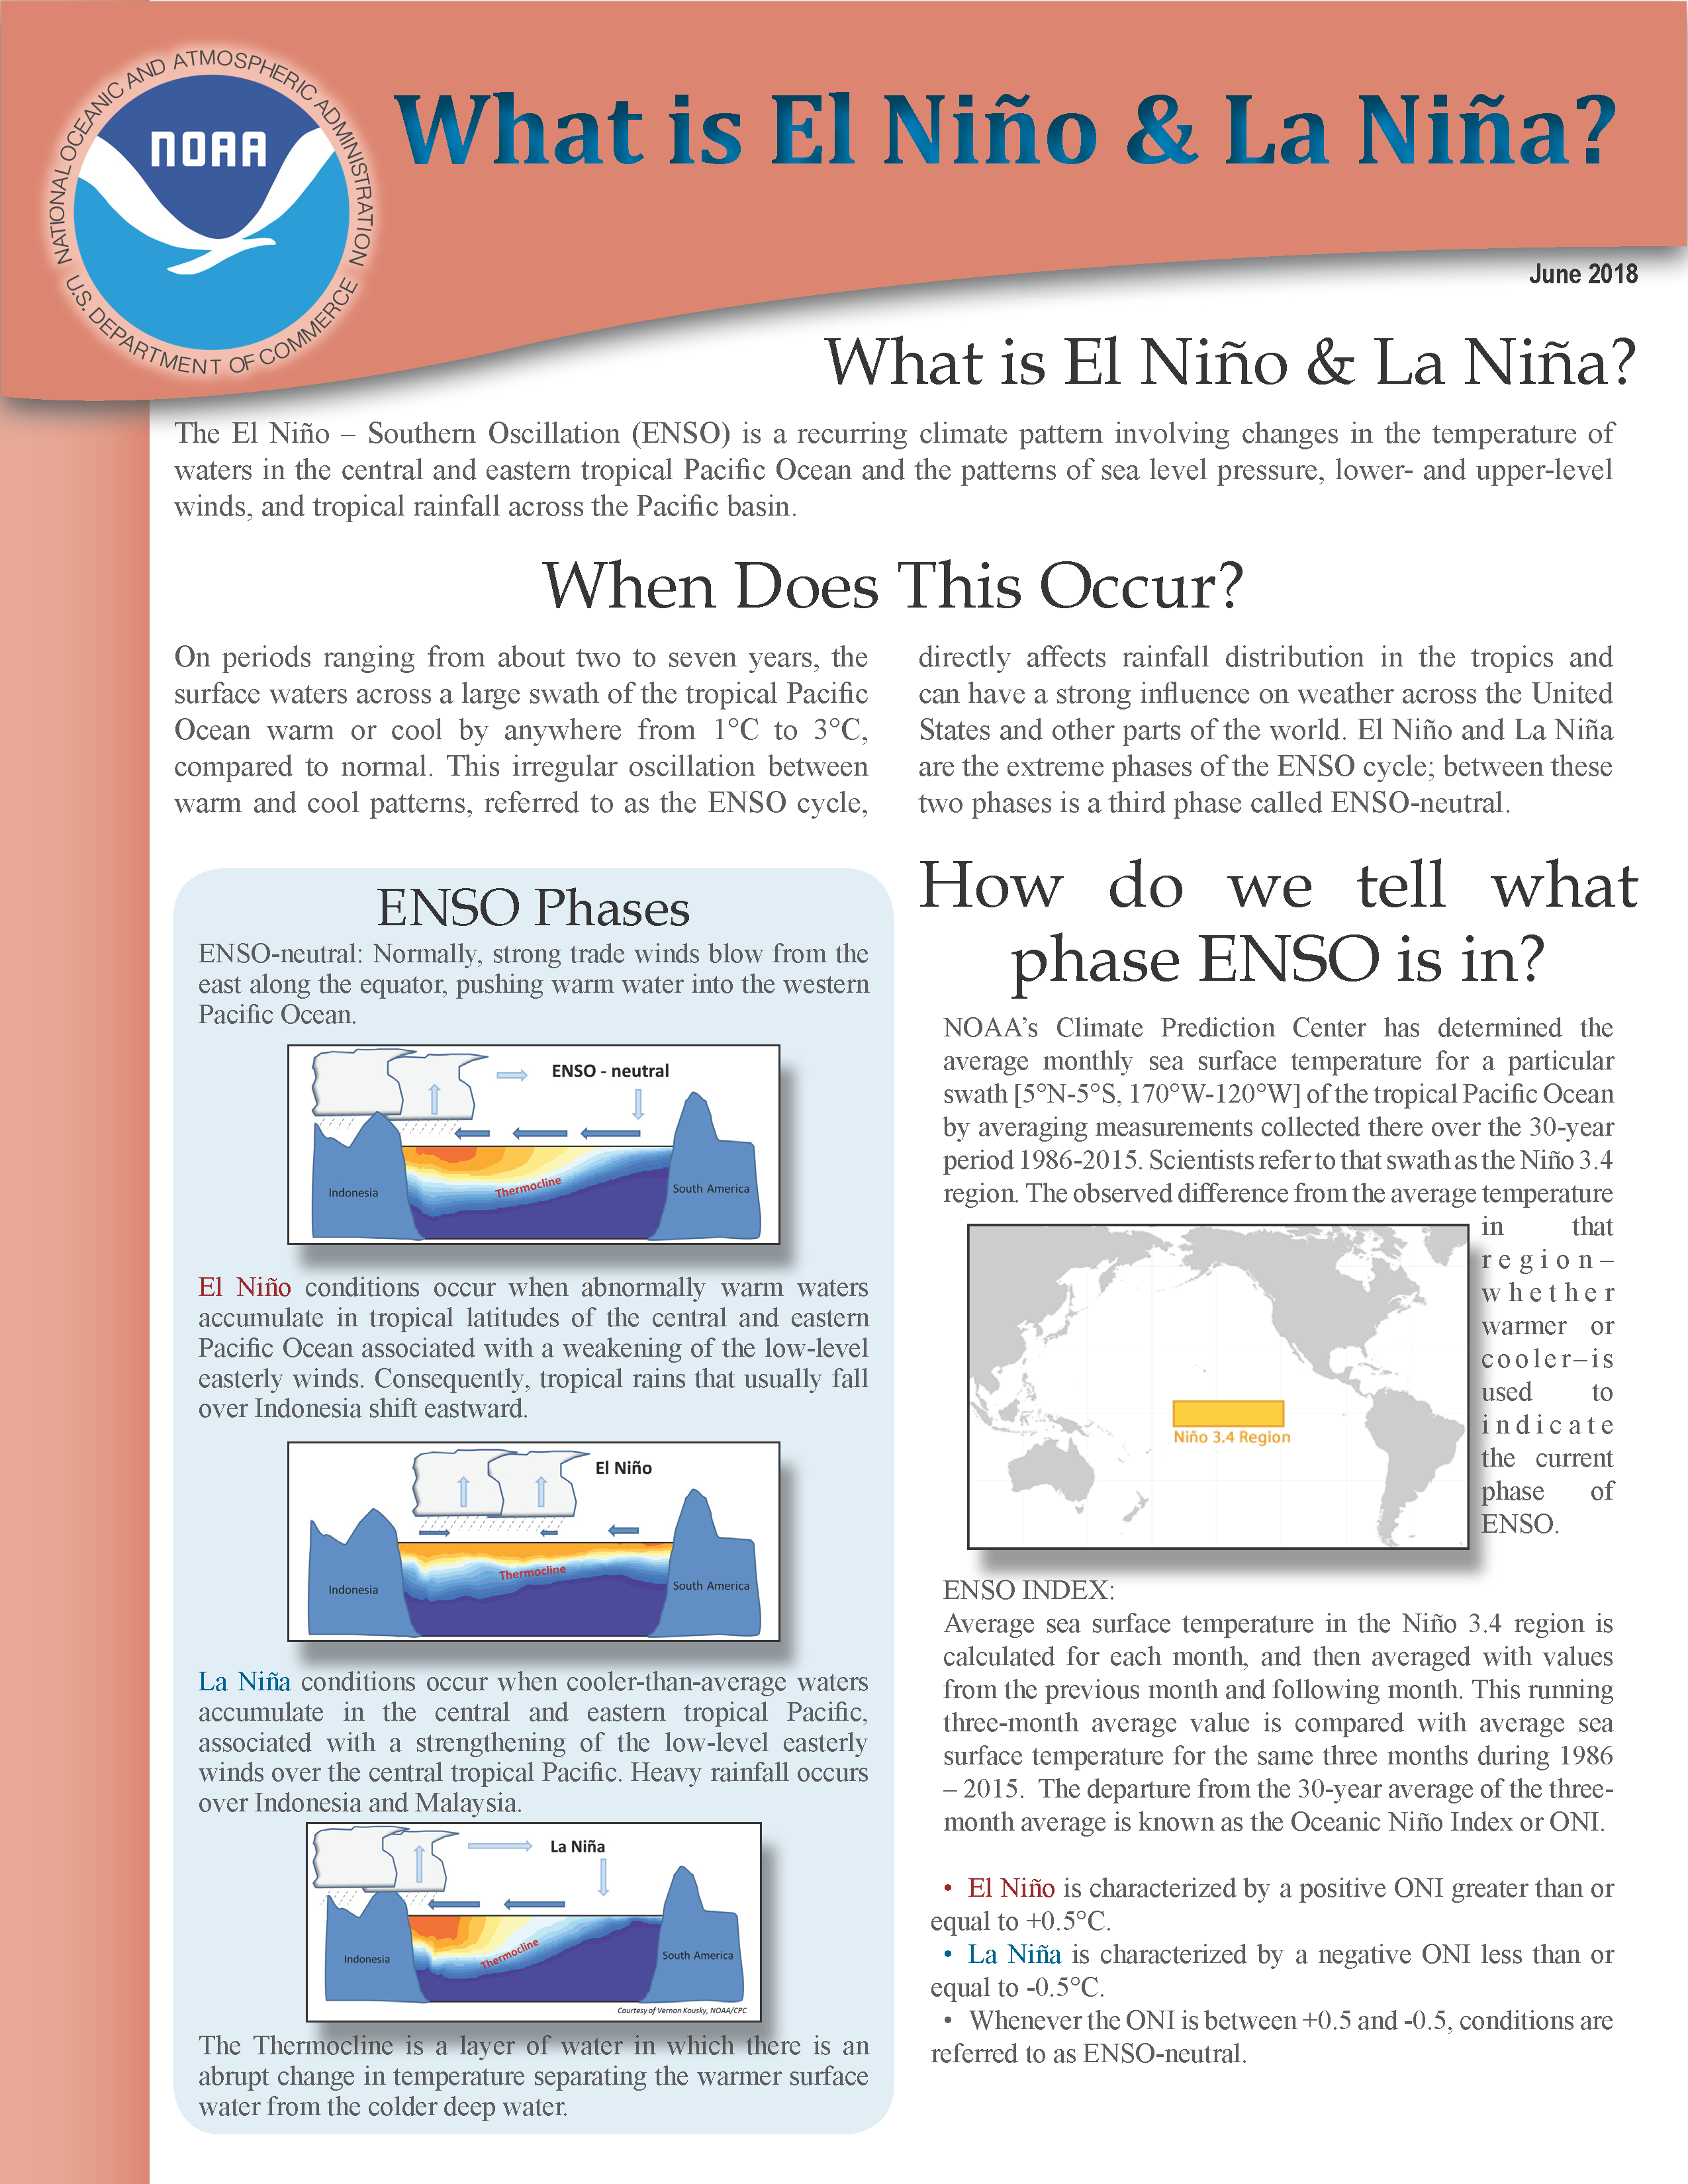 What Is El Nino and La Nina?